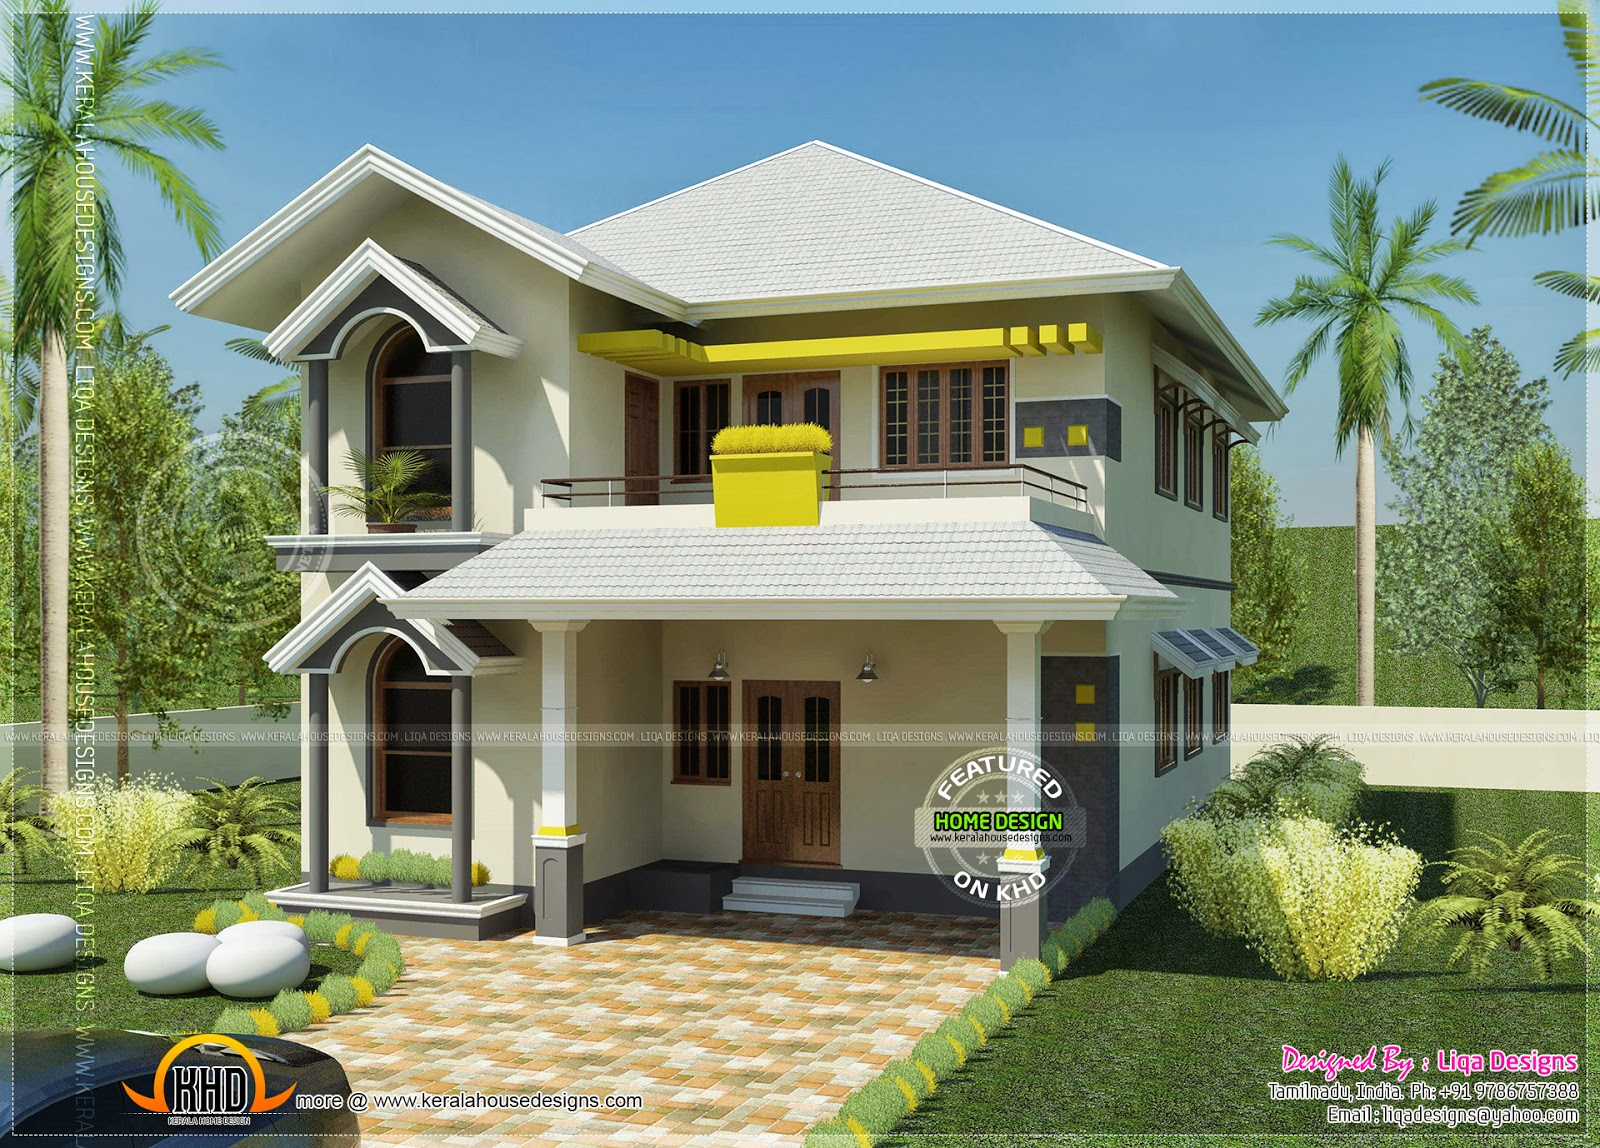 Home Design In India good best interior designed houses with interior designs india interior design indian house home design concept House Design In Indian Style